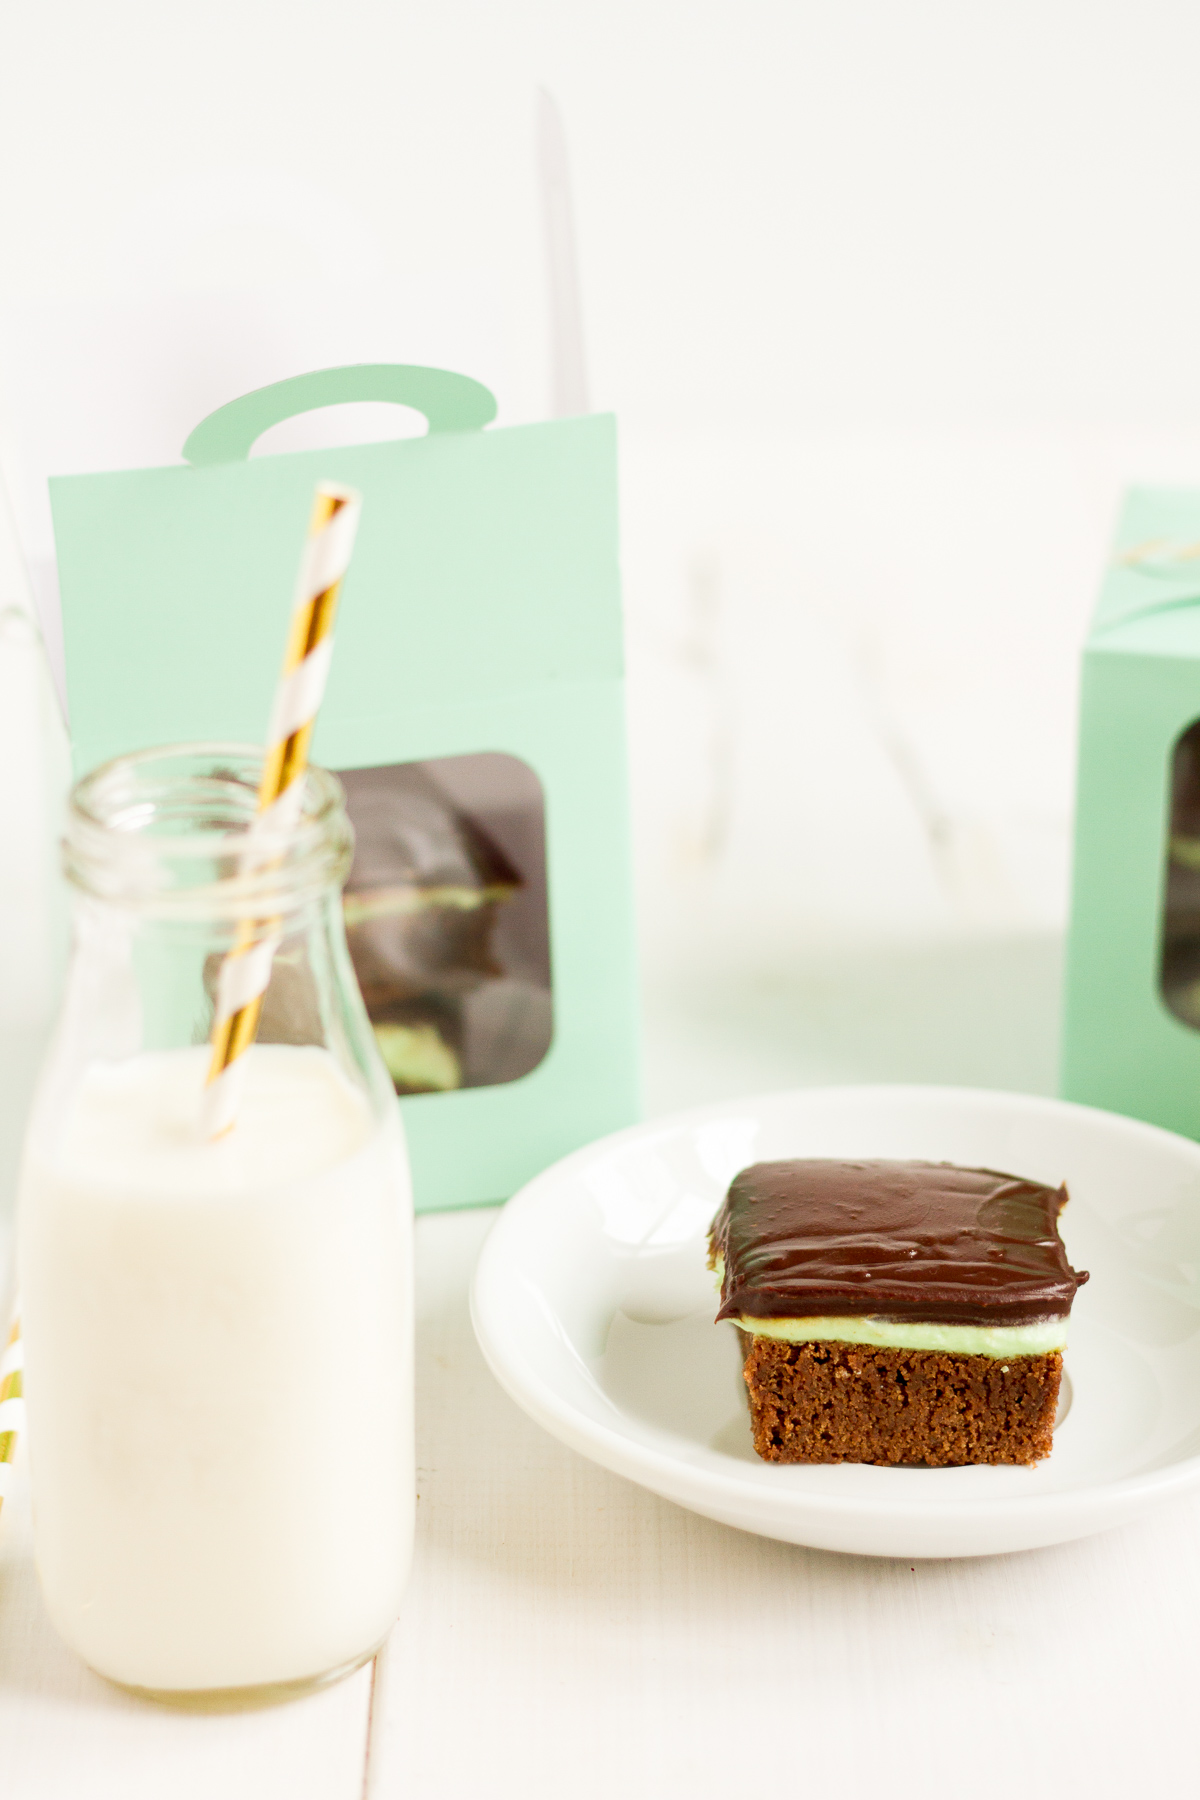 Rich, homemade brownies topped with a layer of minty buttercream and chocolate ganache, these mint chocolate brownies are perfection.